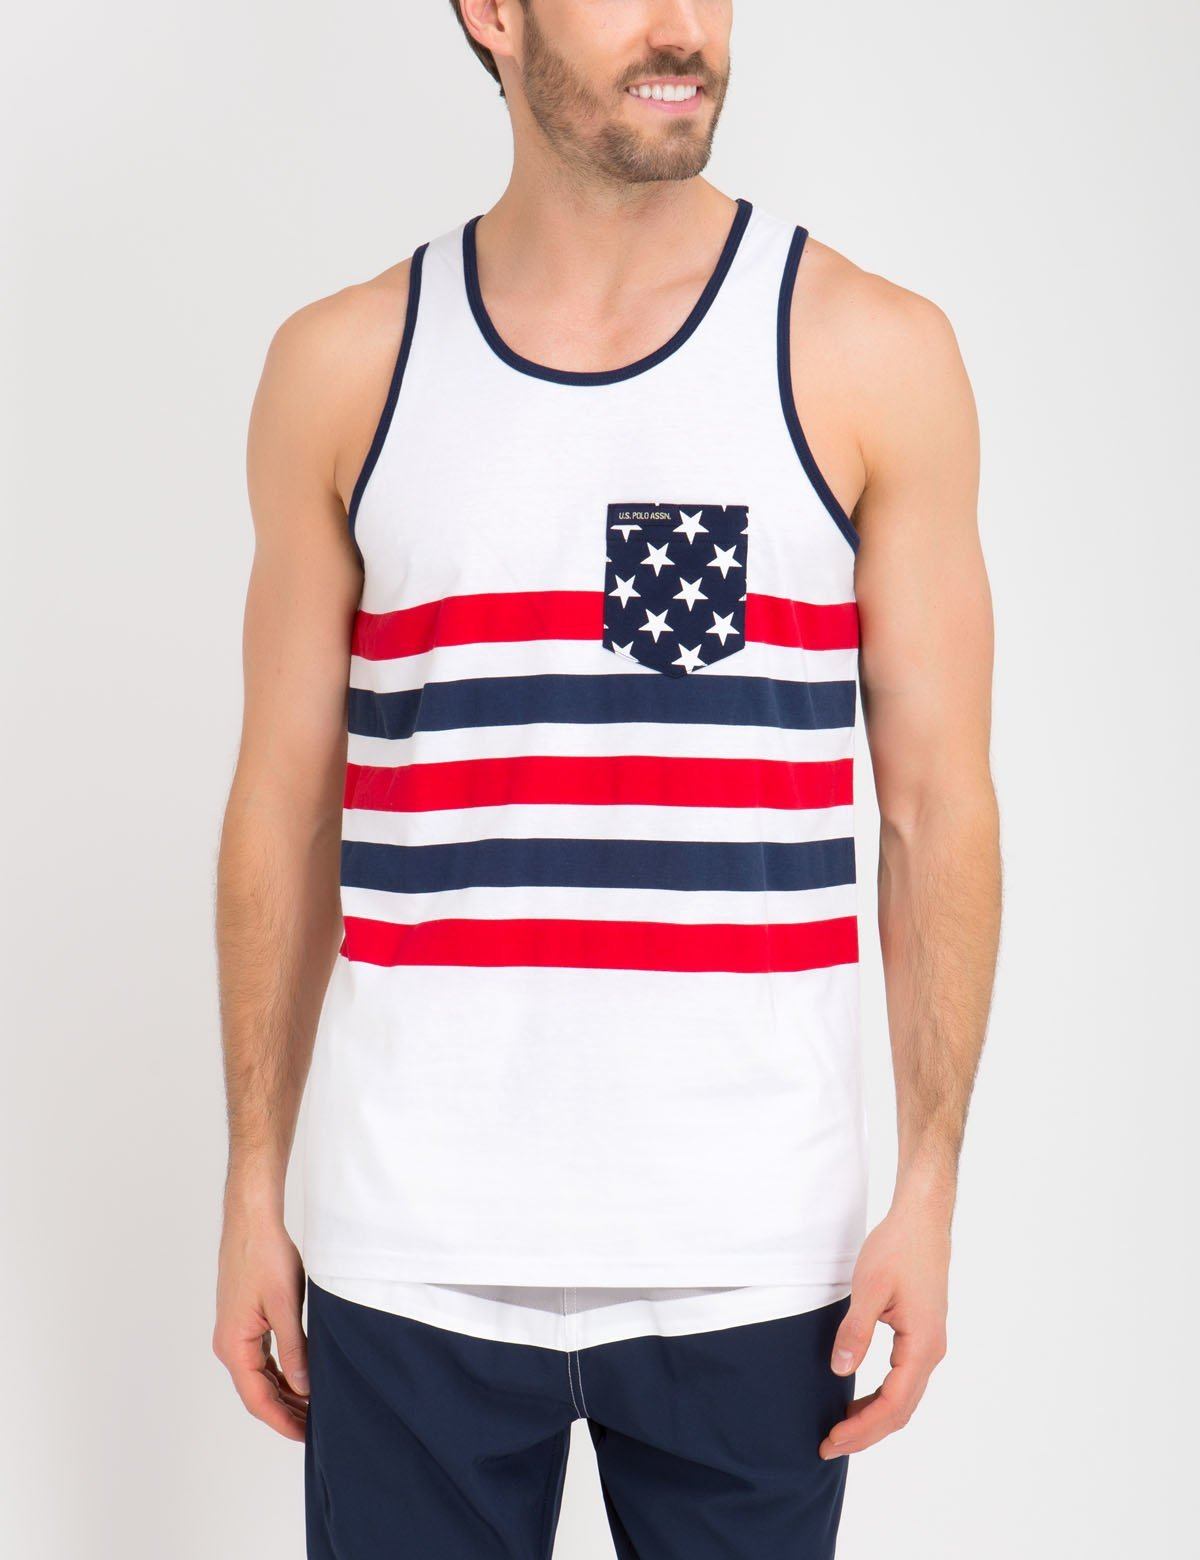 STARS AND STRIPES TANK